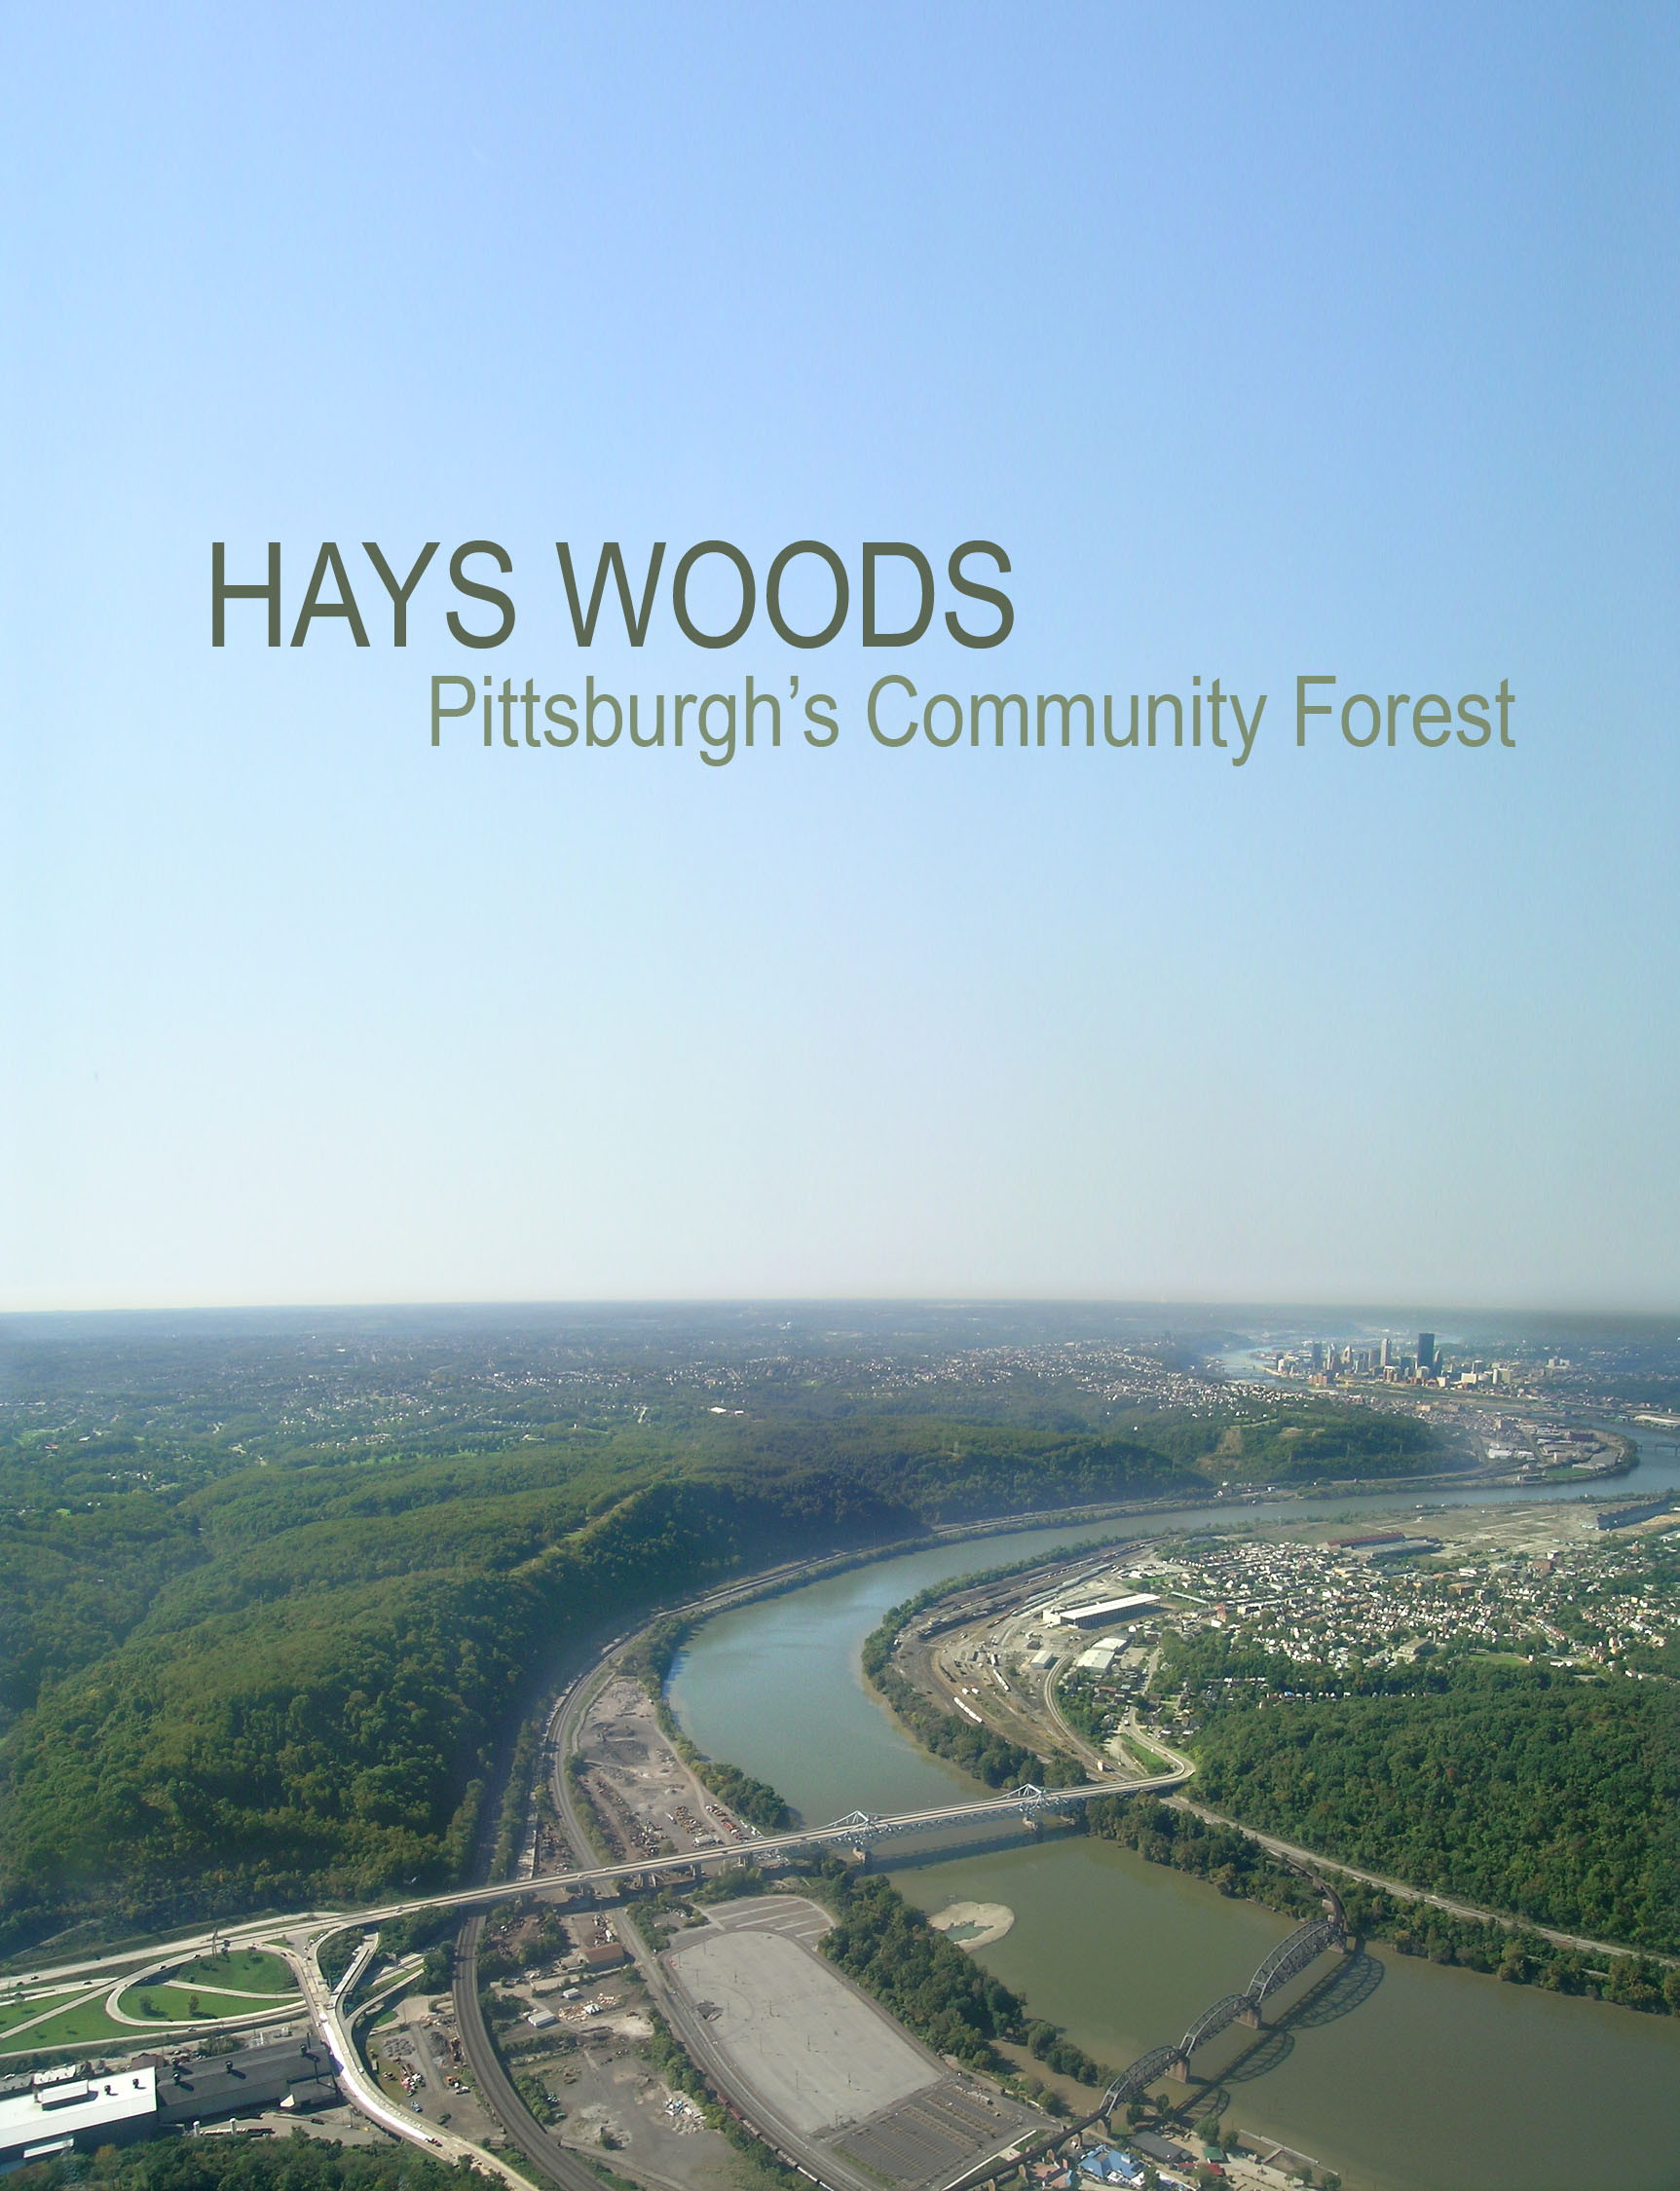 hays woods project